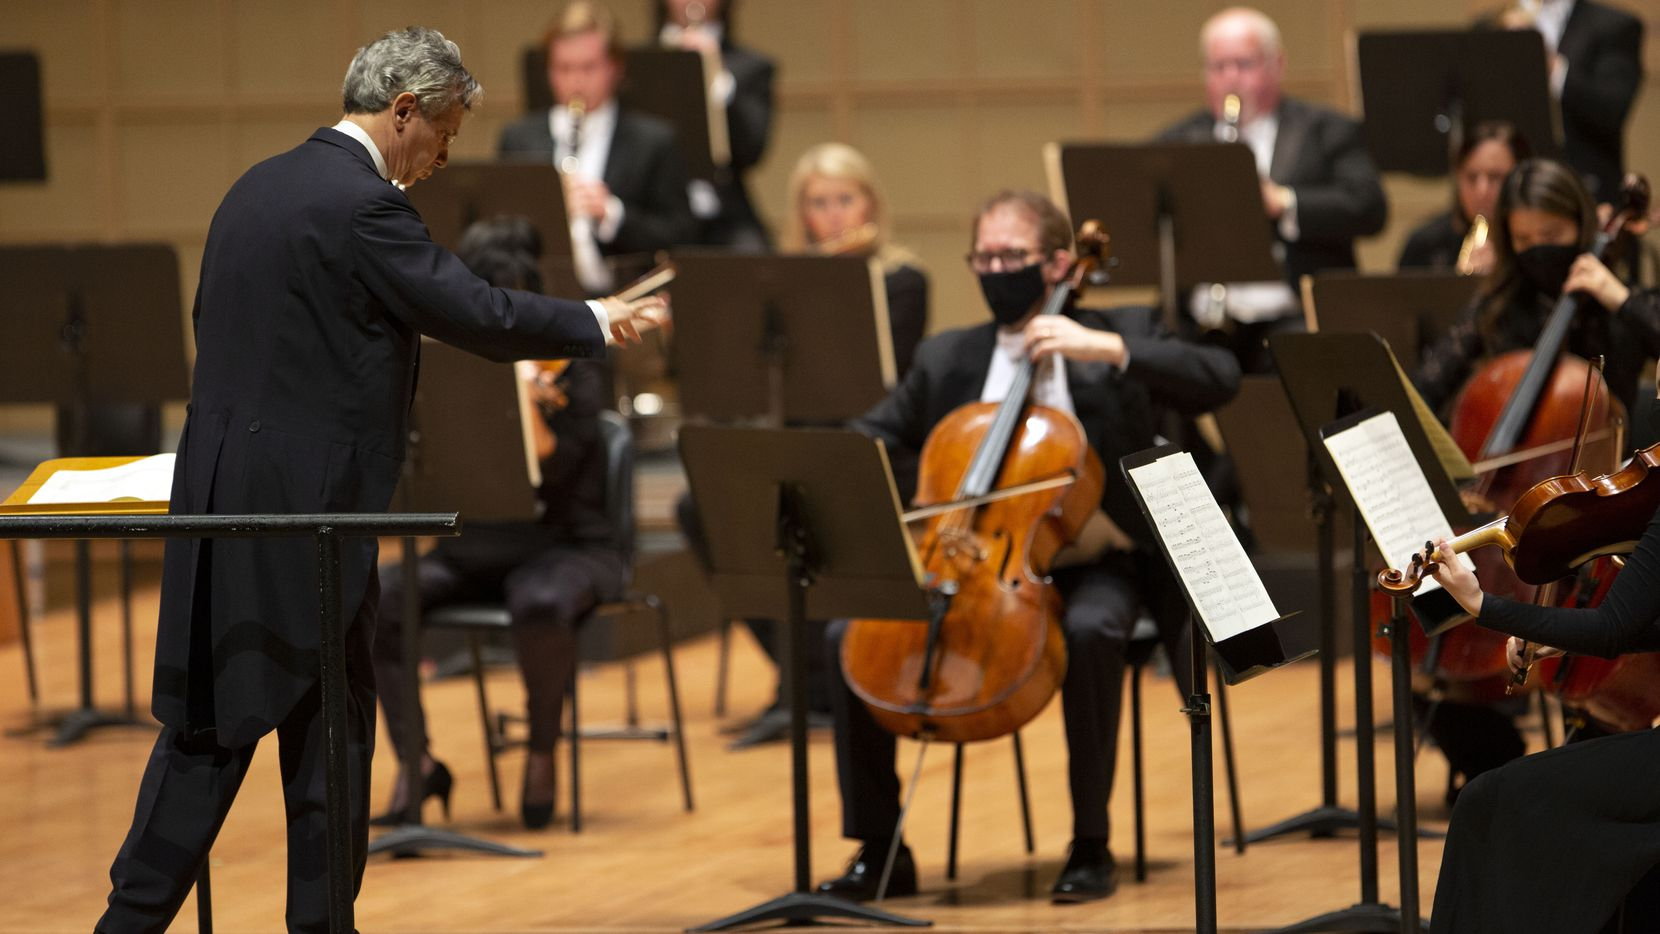 Music director Fabio Luisi conducts the Dallas Symphony Orchestra at the Meyerson Symphony Center in Dallas on Feb. 4, 2021.